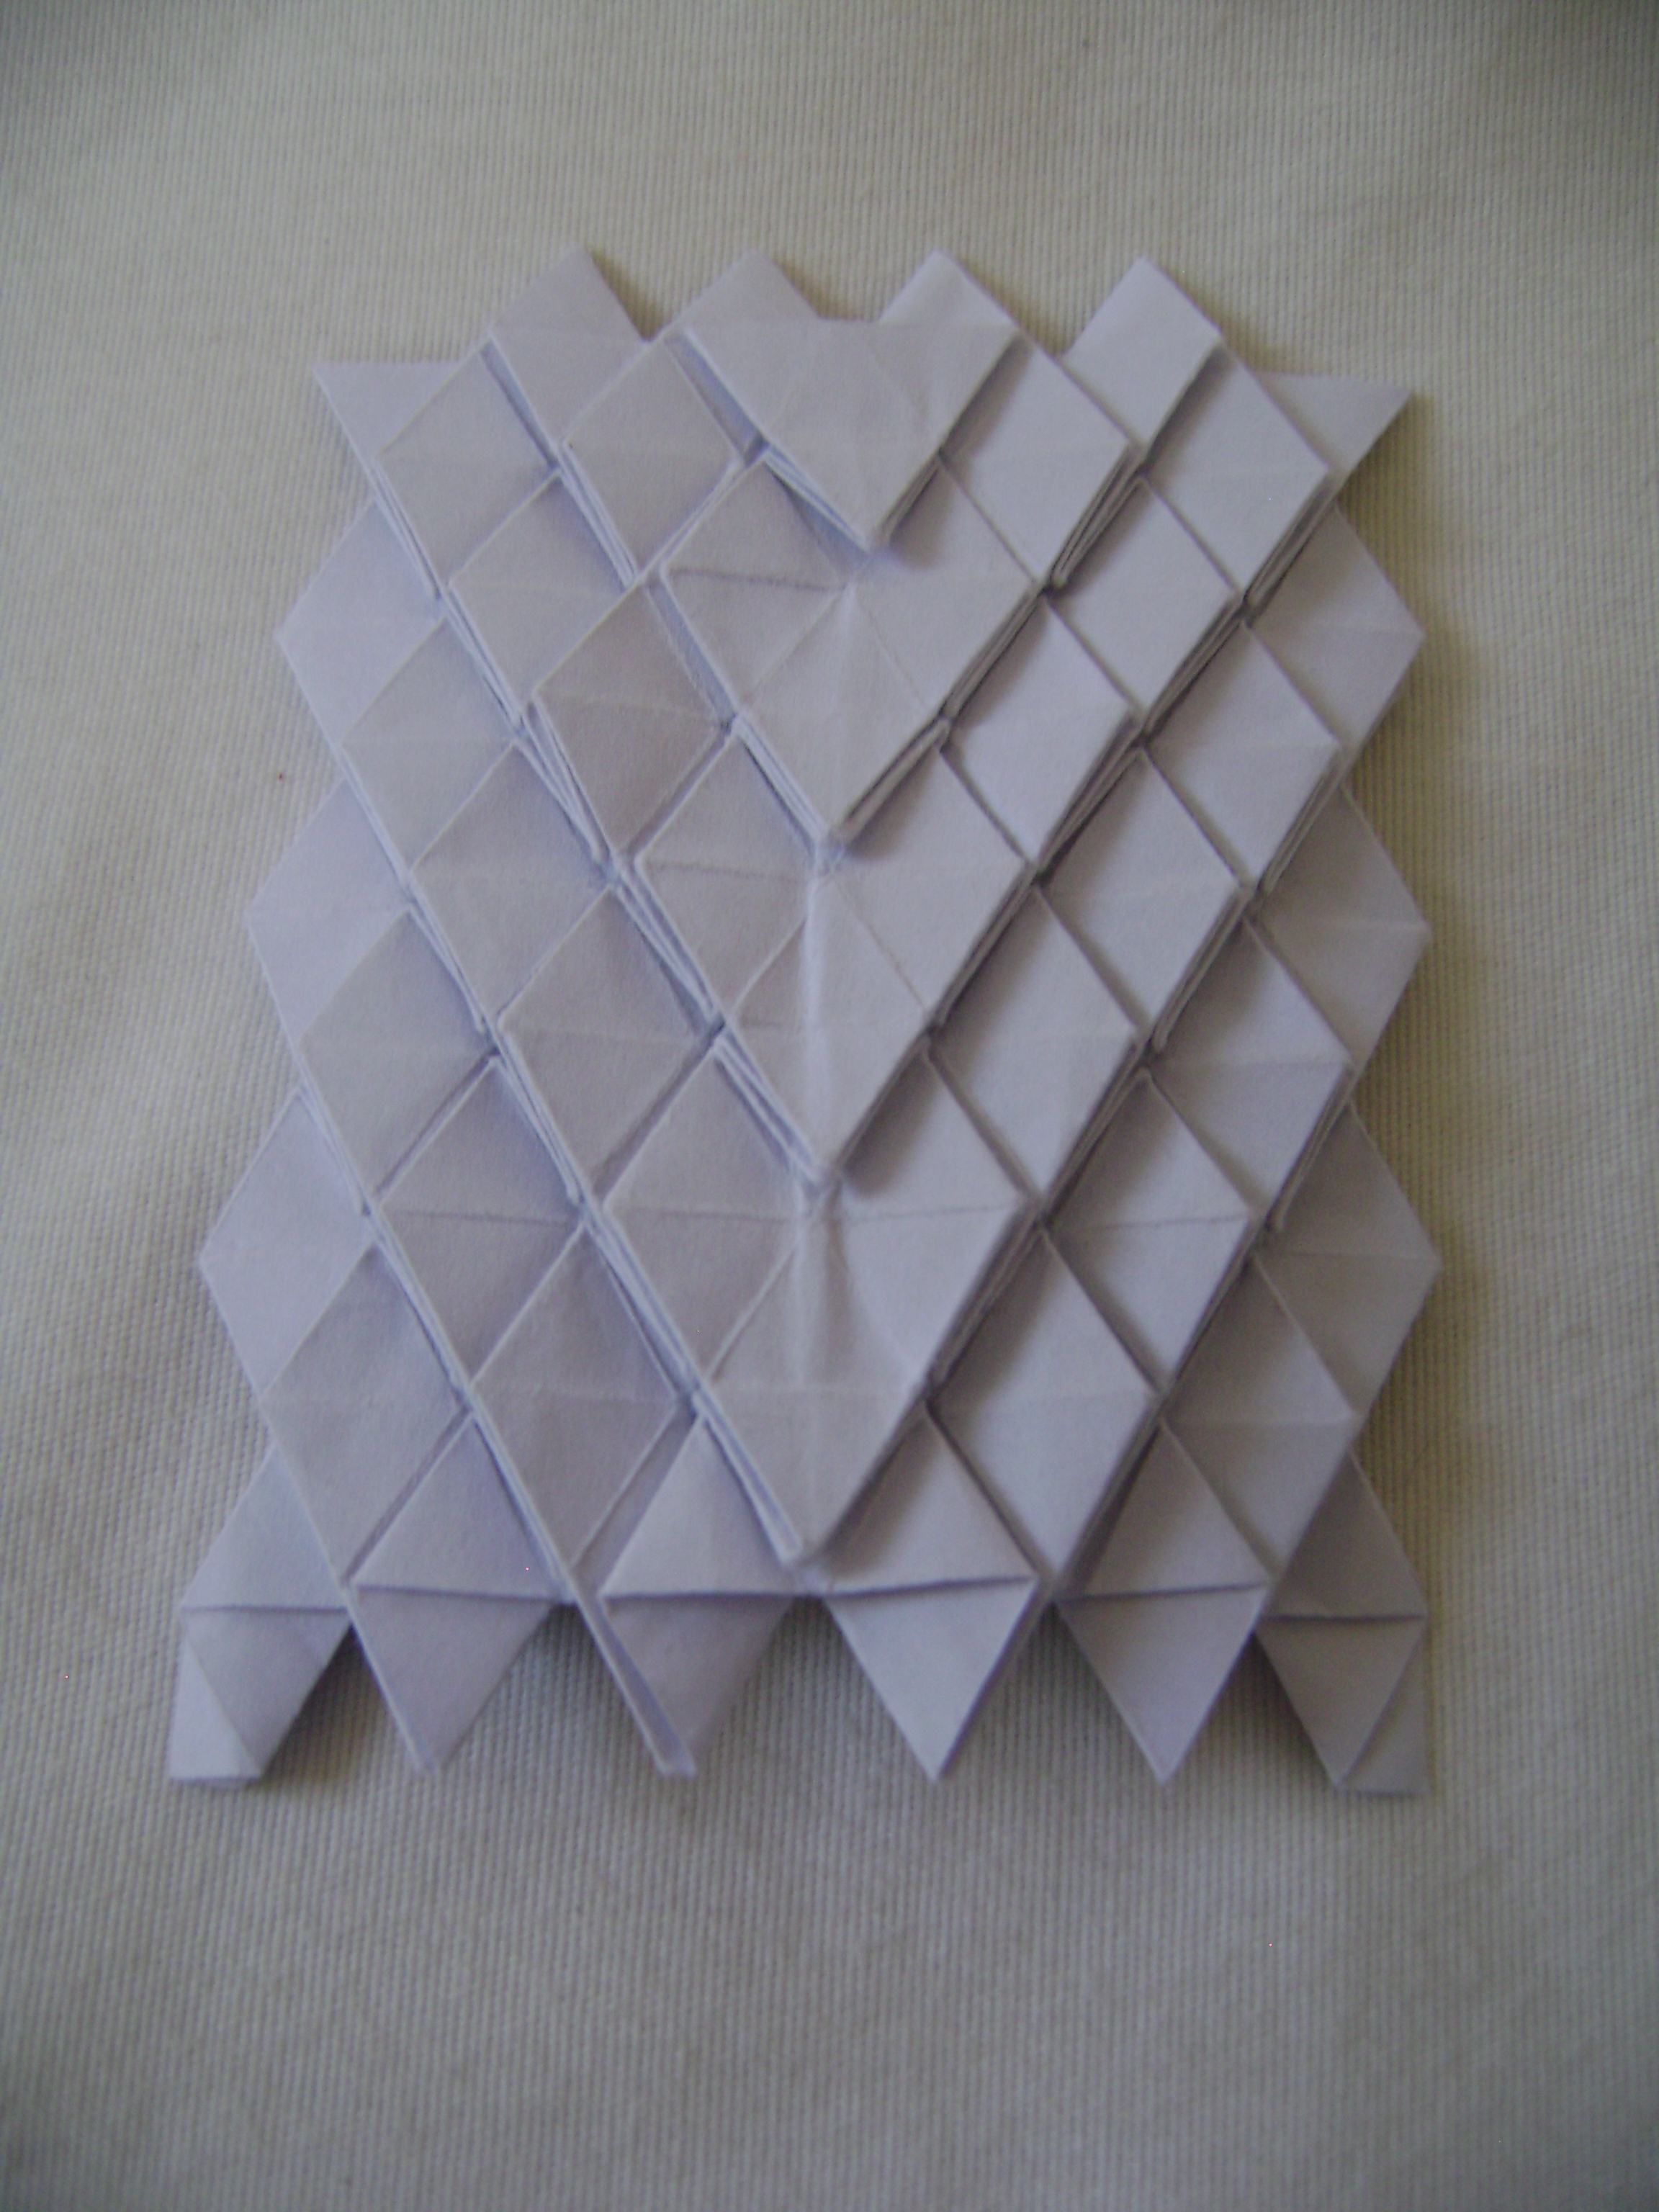 Snake Skin And Untitled Tessellation (Five and Six ... - photo#26